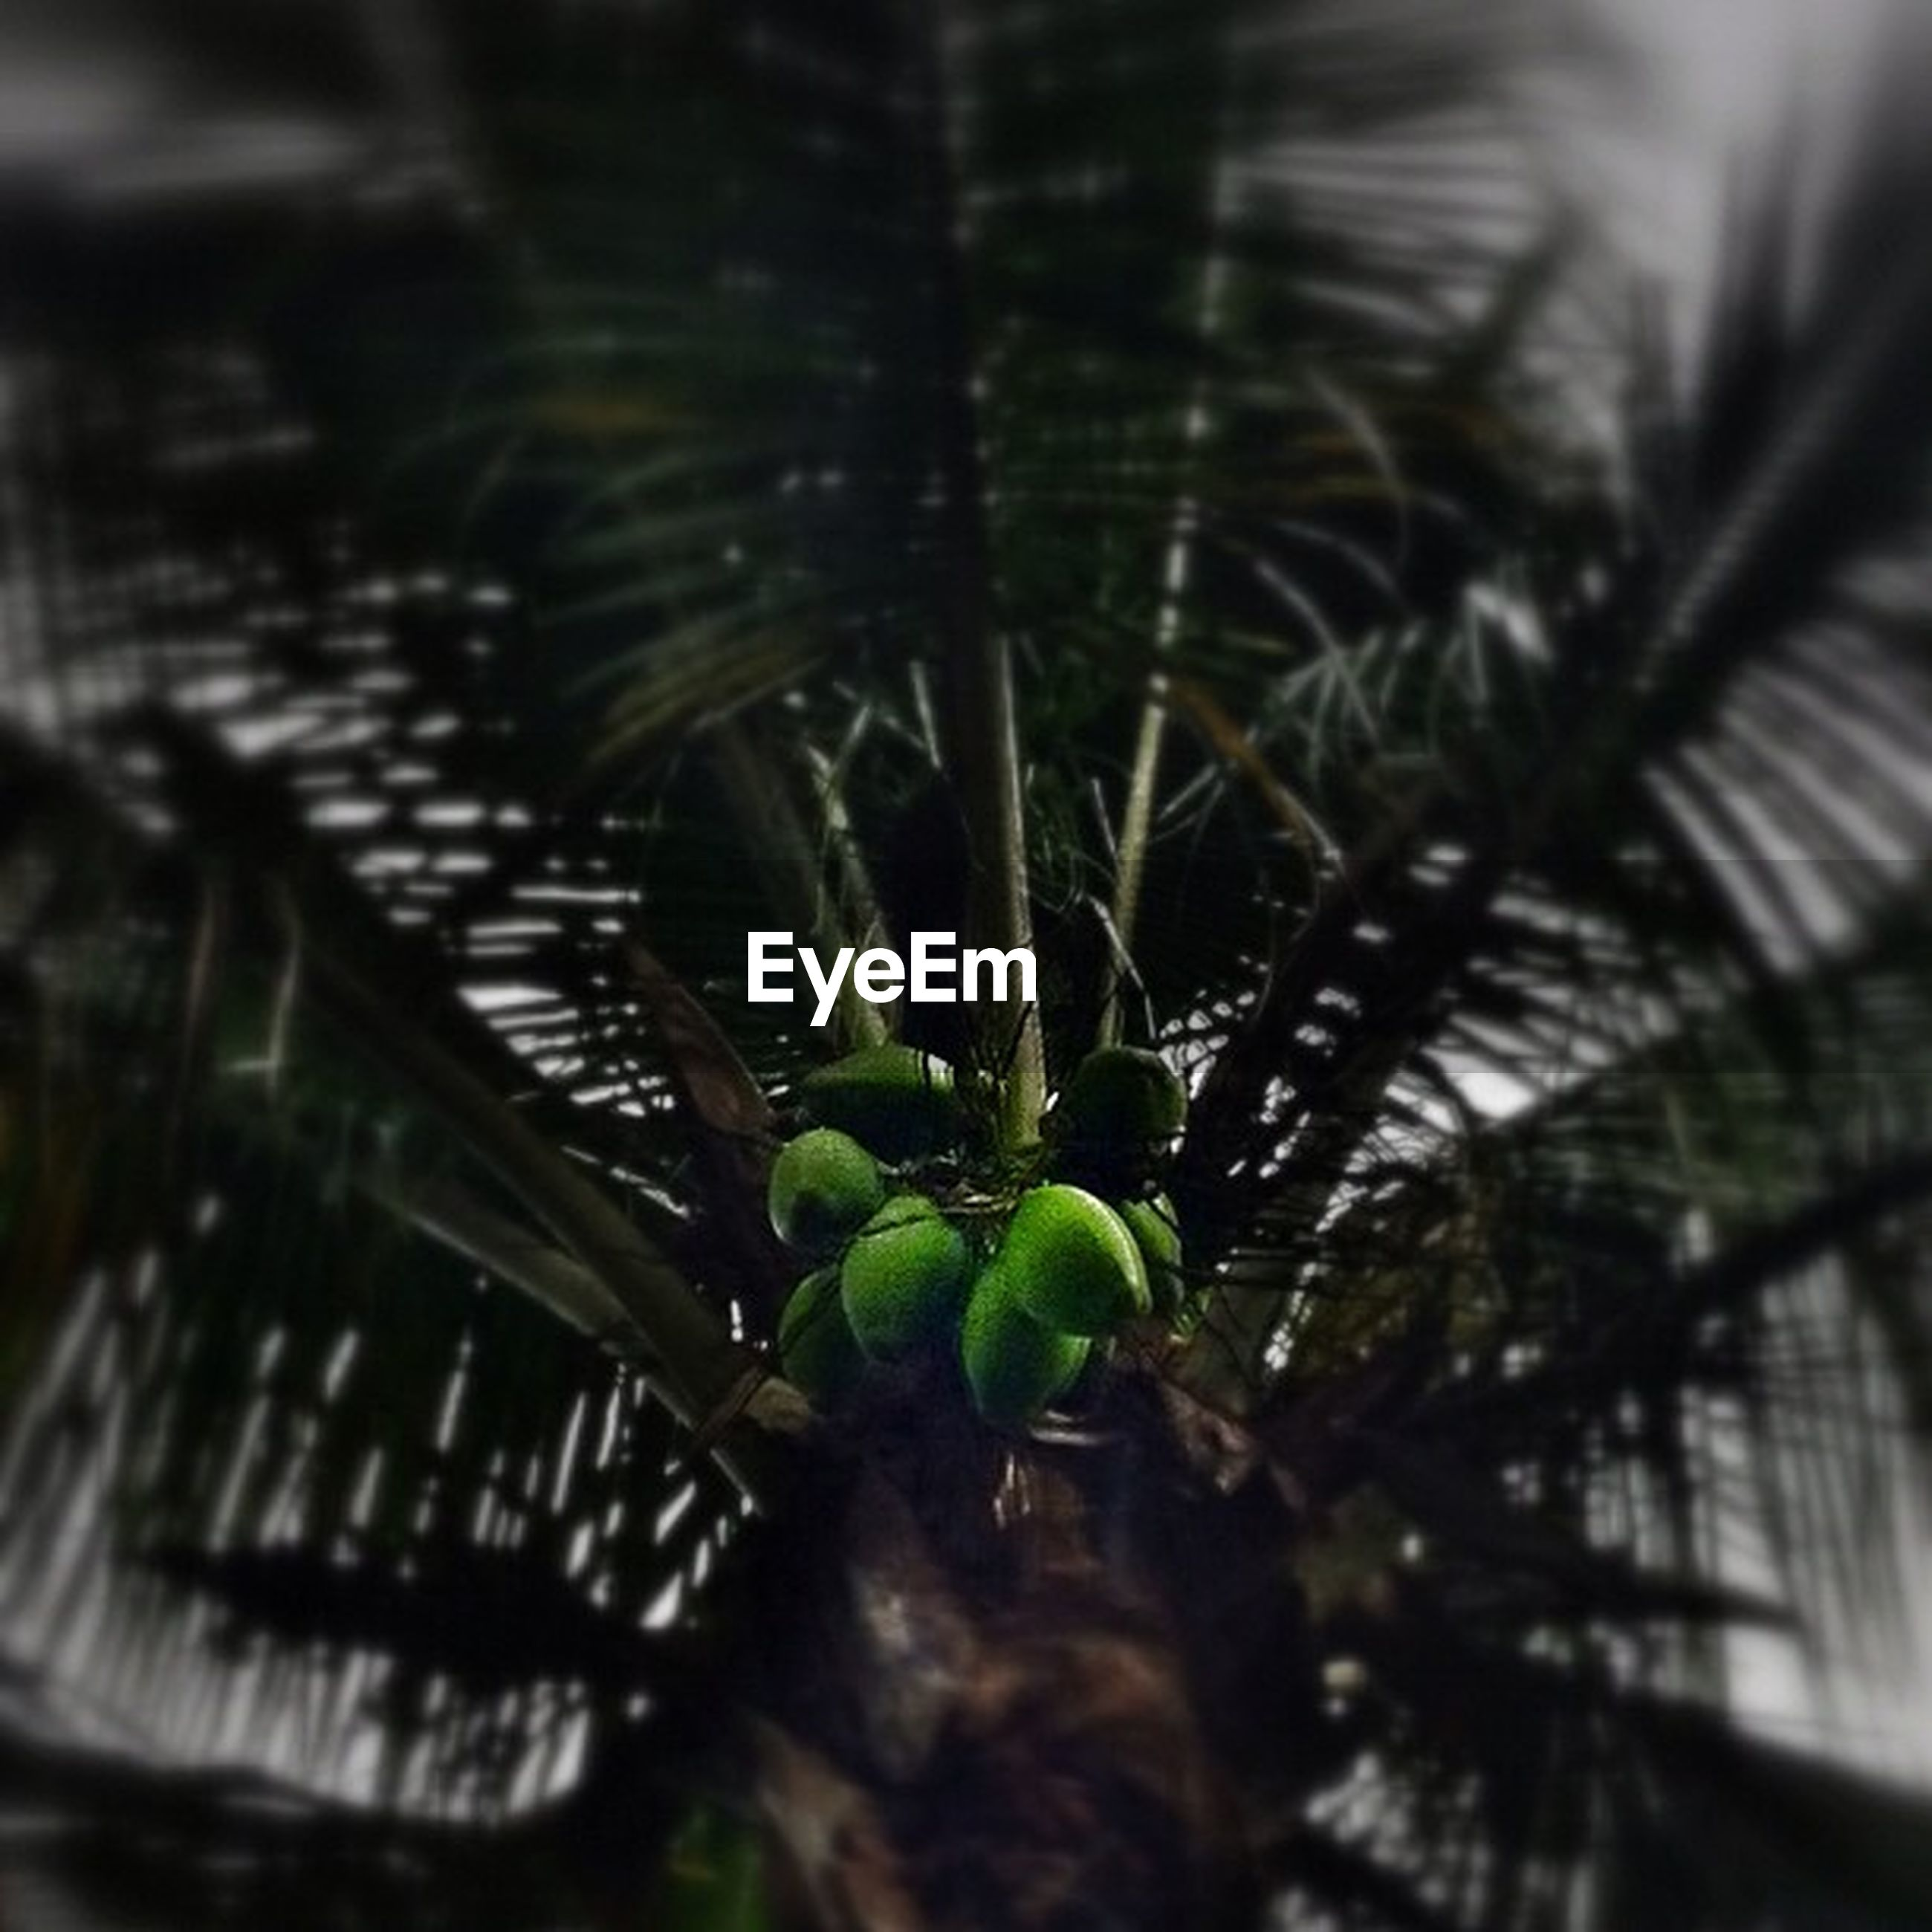 growth, tree, plant, selective focus, focus on foreground, leaf, nature, close-up, green color, outdoors, no people, day, branch, low angle view, built structure, growing, palm tree, tranquility, sunlight, architecture